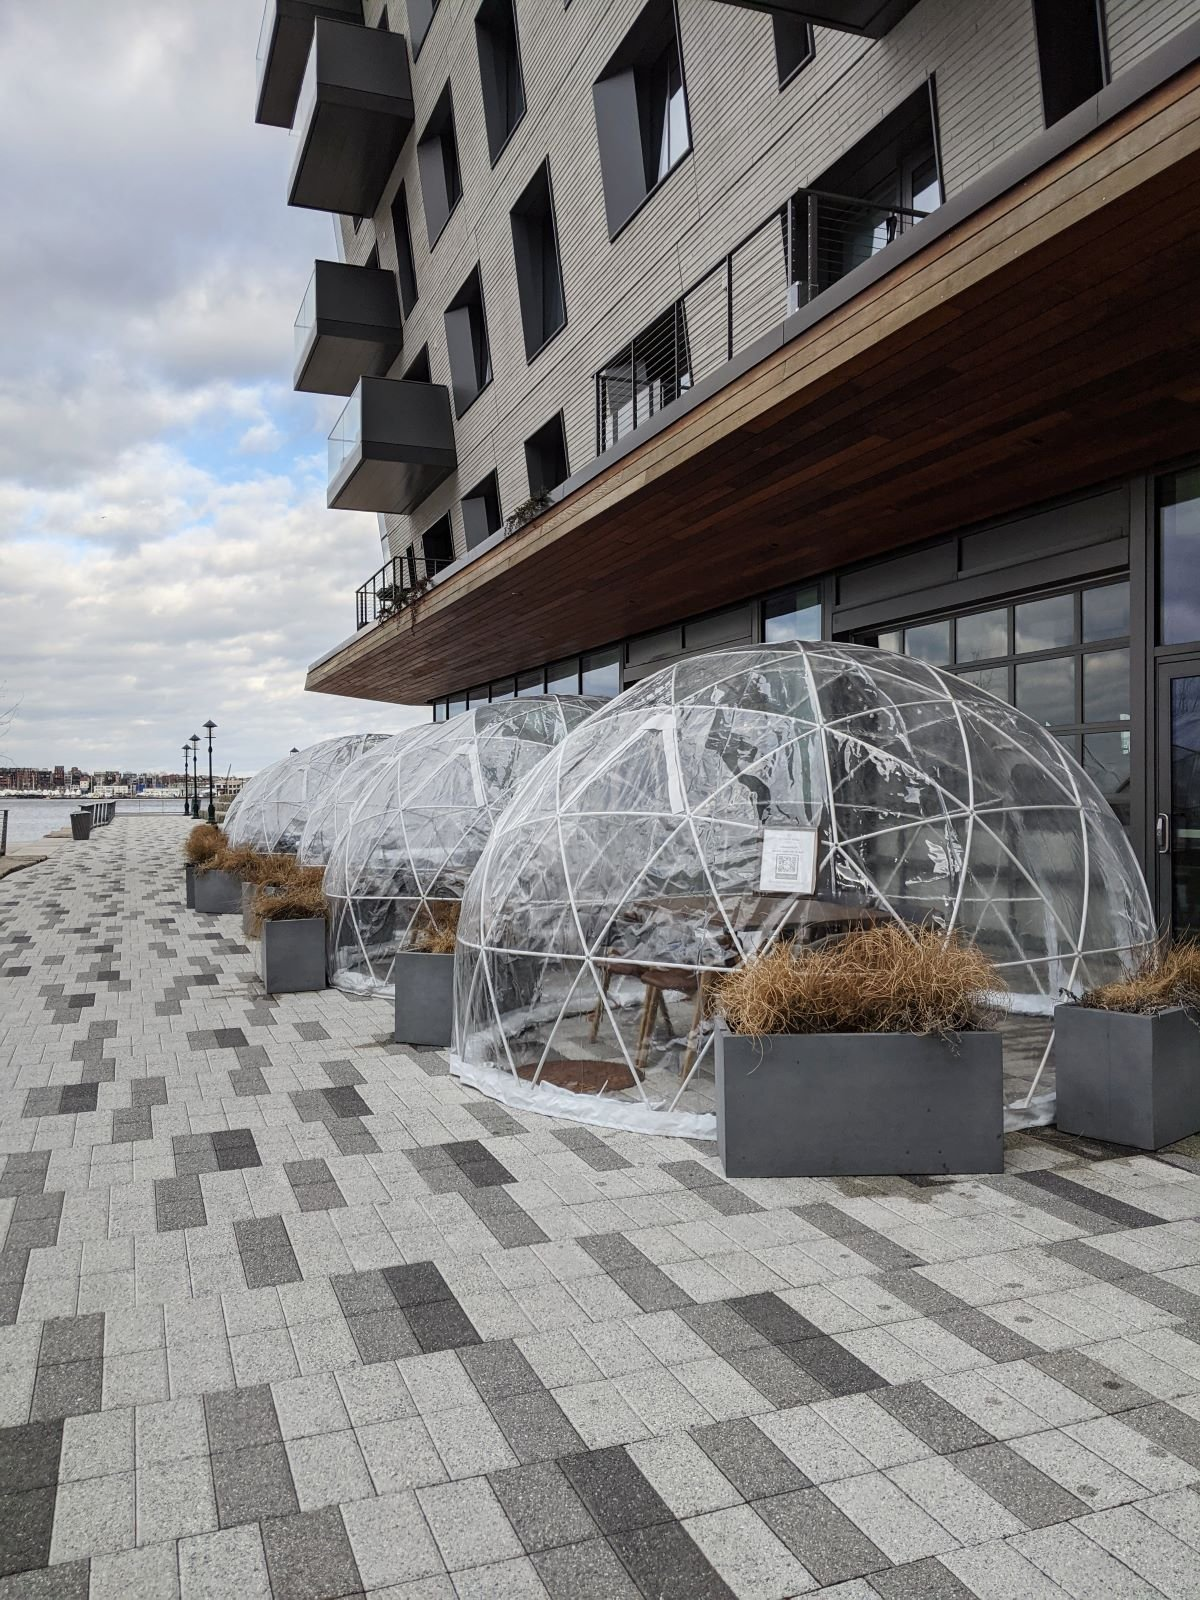 igloo restaurant capsules along the harbor in Seaport